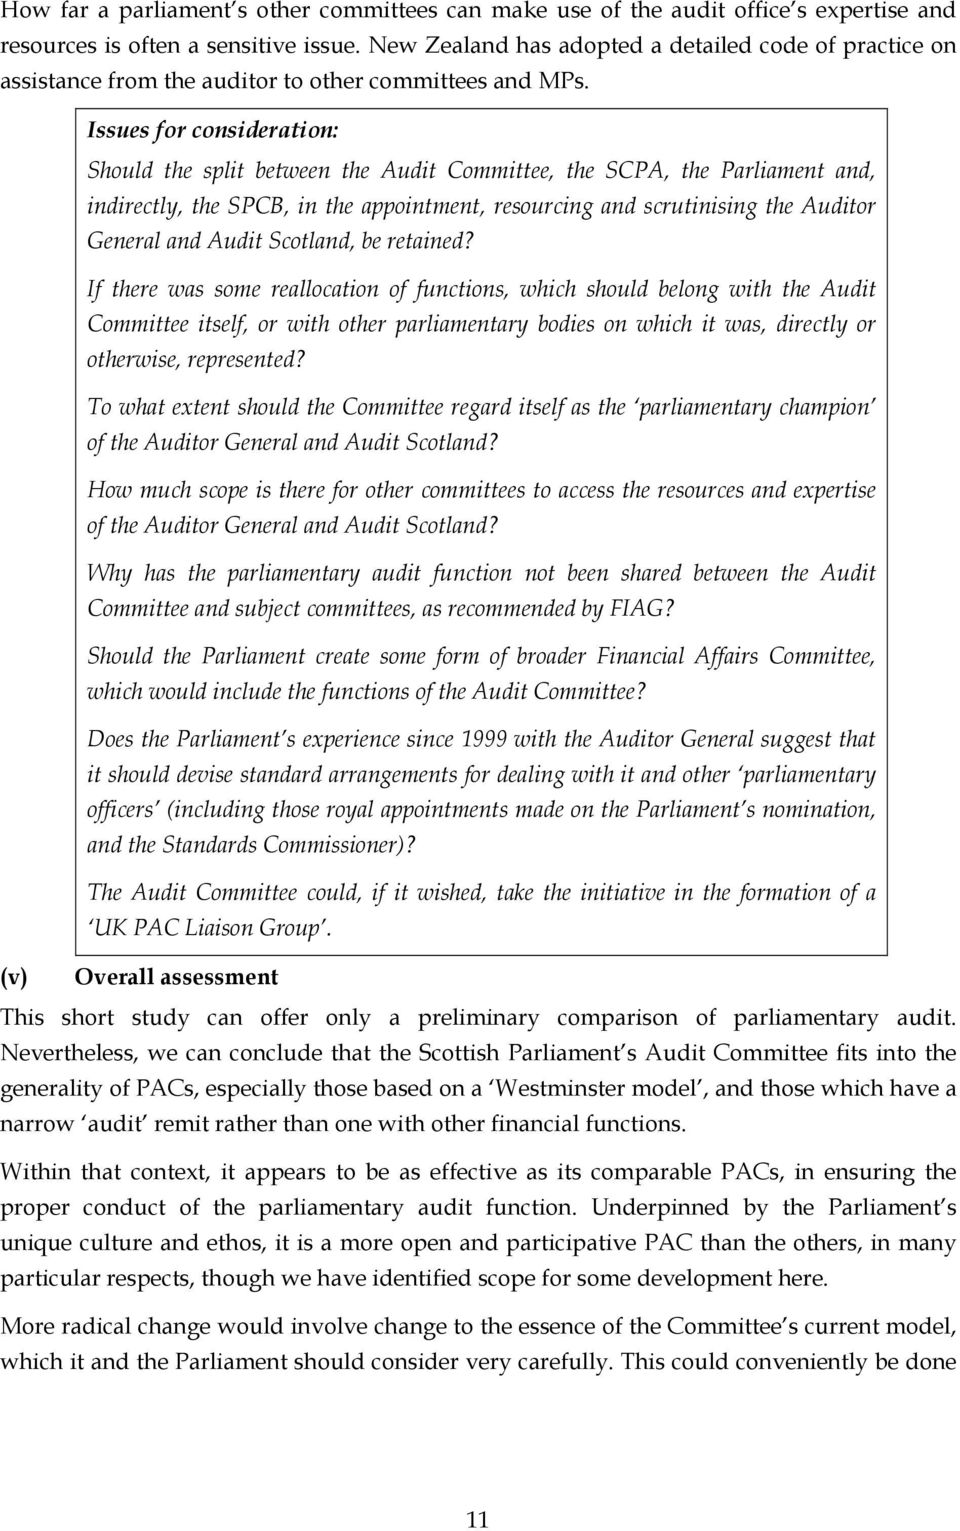 Issues for consideration: Should the split between the Audit Committee, the SCPA, the Parliament and, indirectly, the SPCB, in the appointment, resourcing and scrutinising the Auditor General and